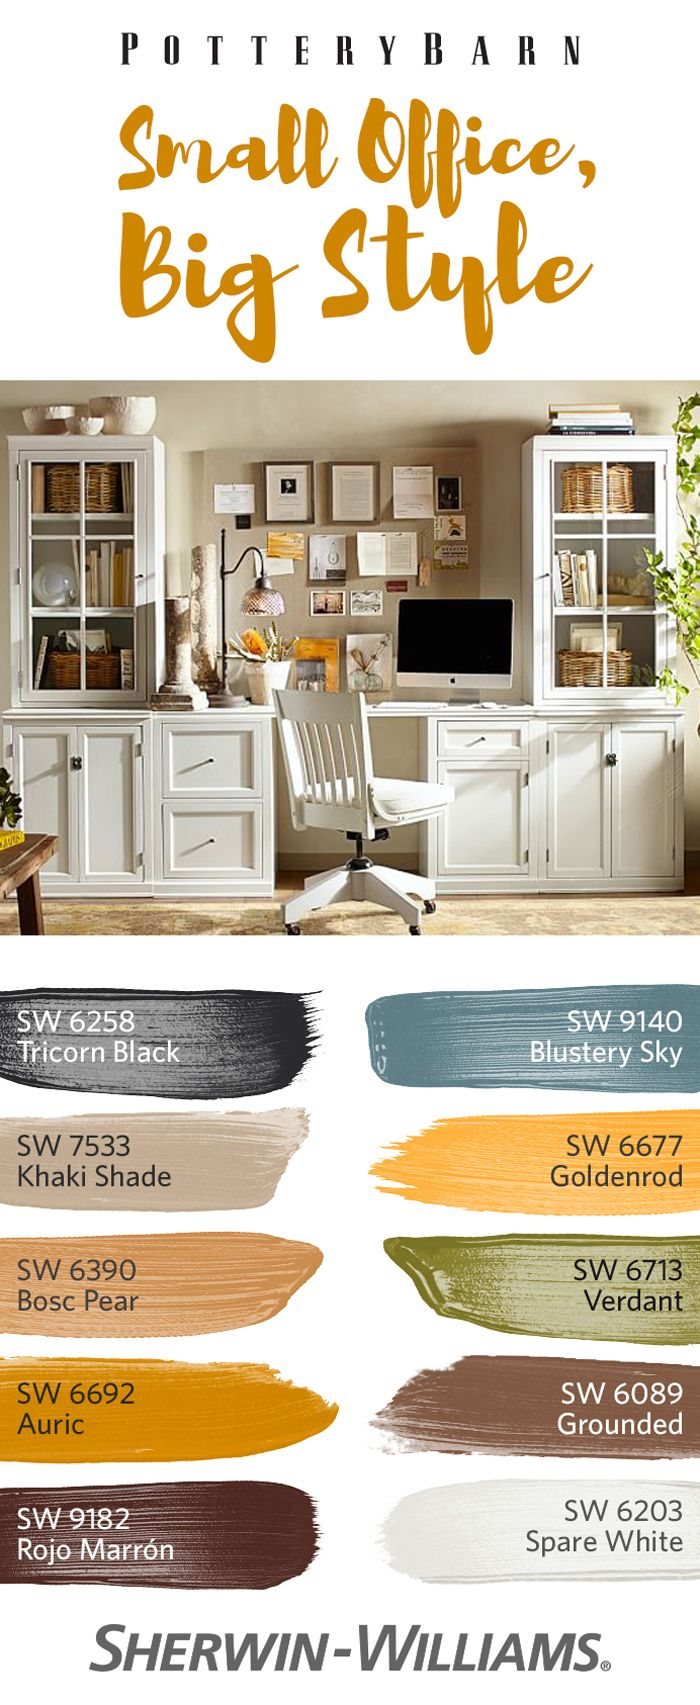 43 Best Images About Pottery Barn Paint Collection On